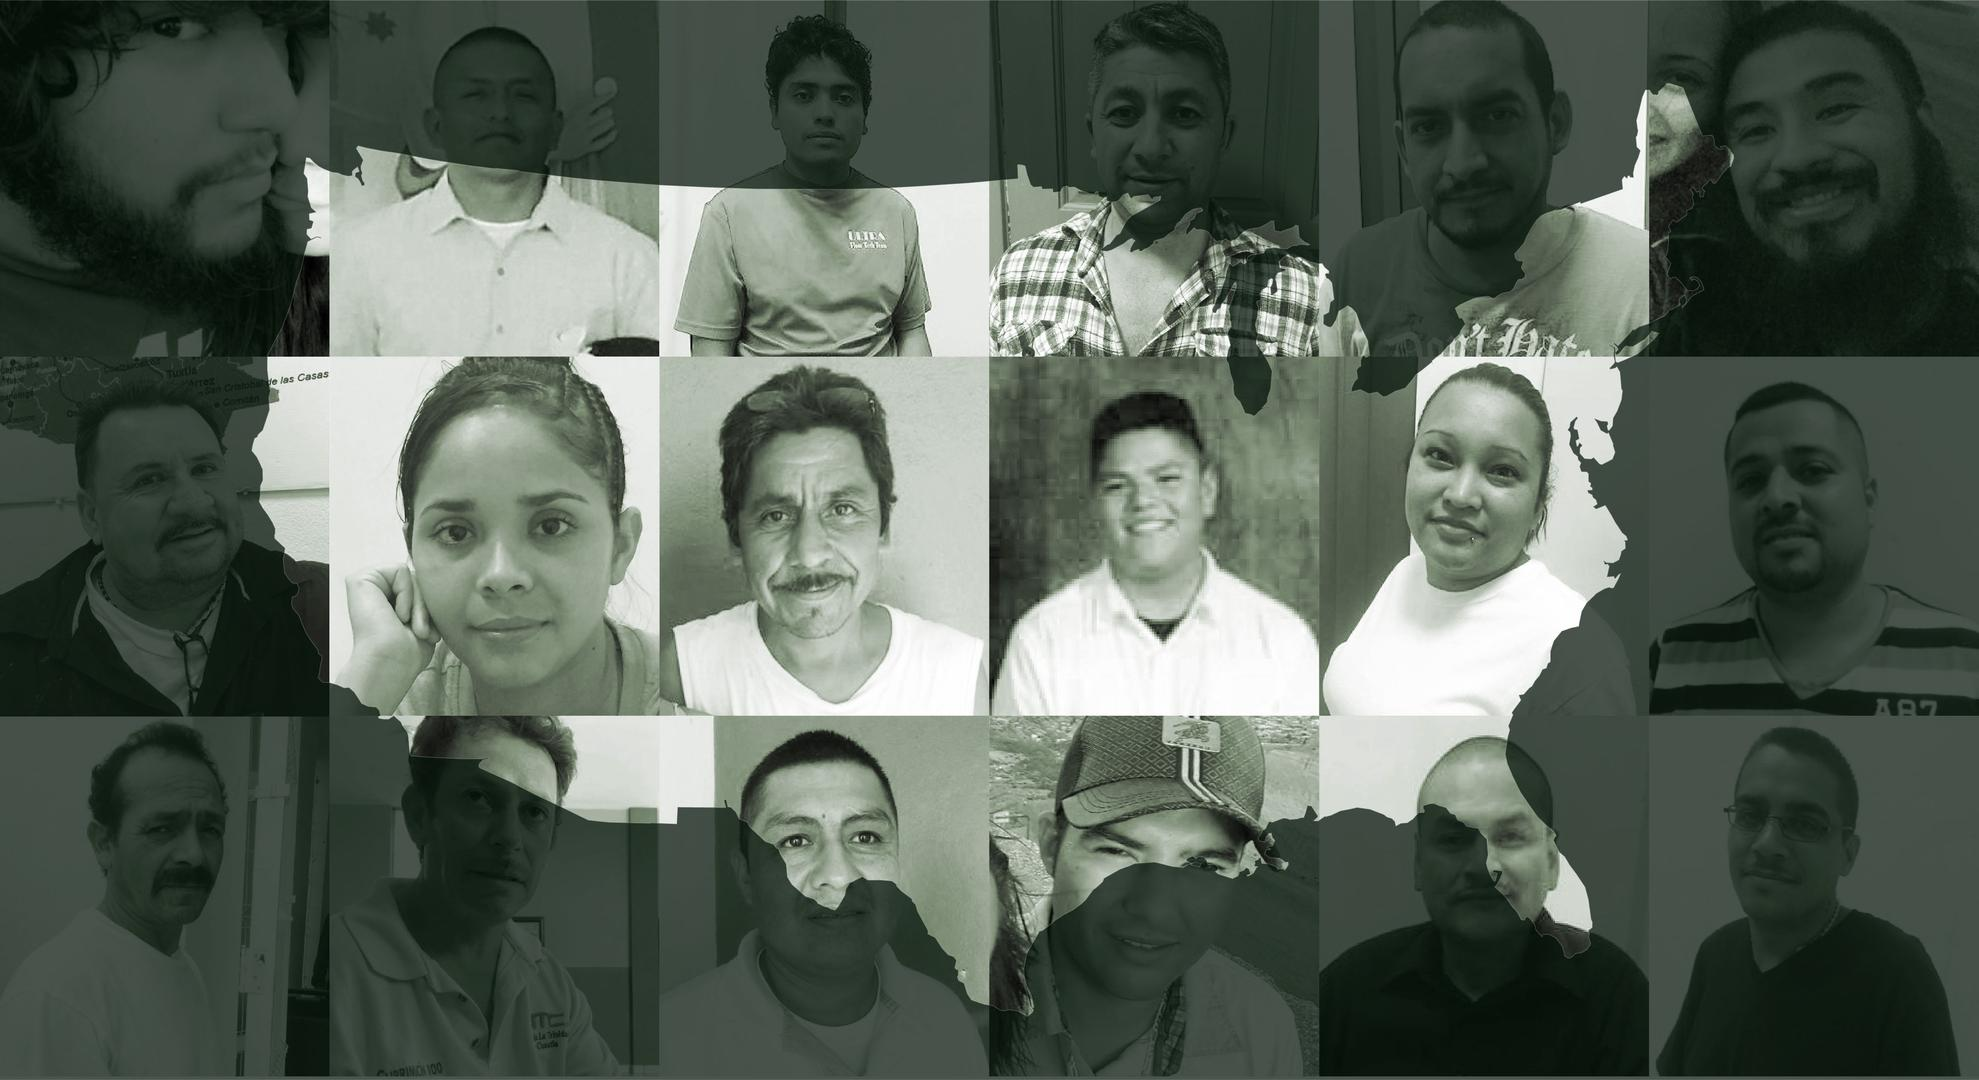 The Deported | Human Rights Watch